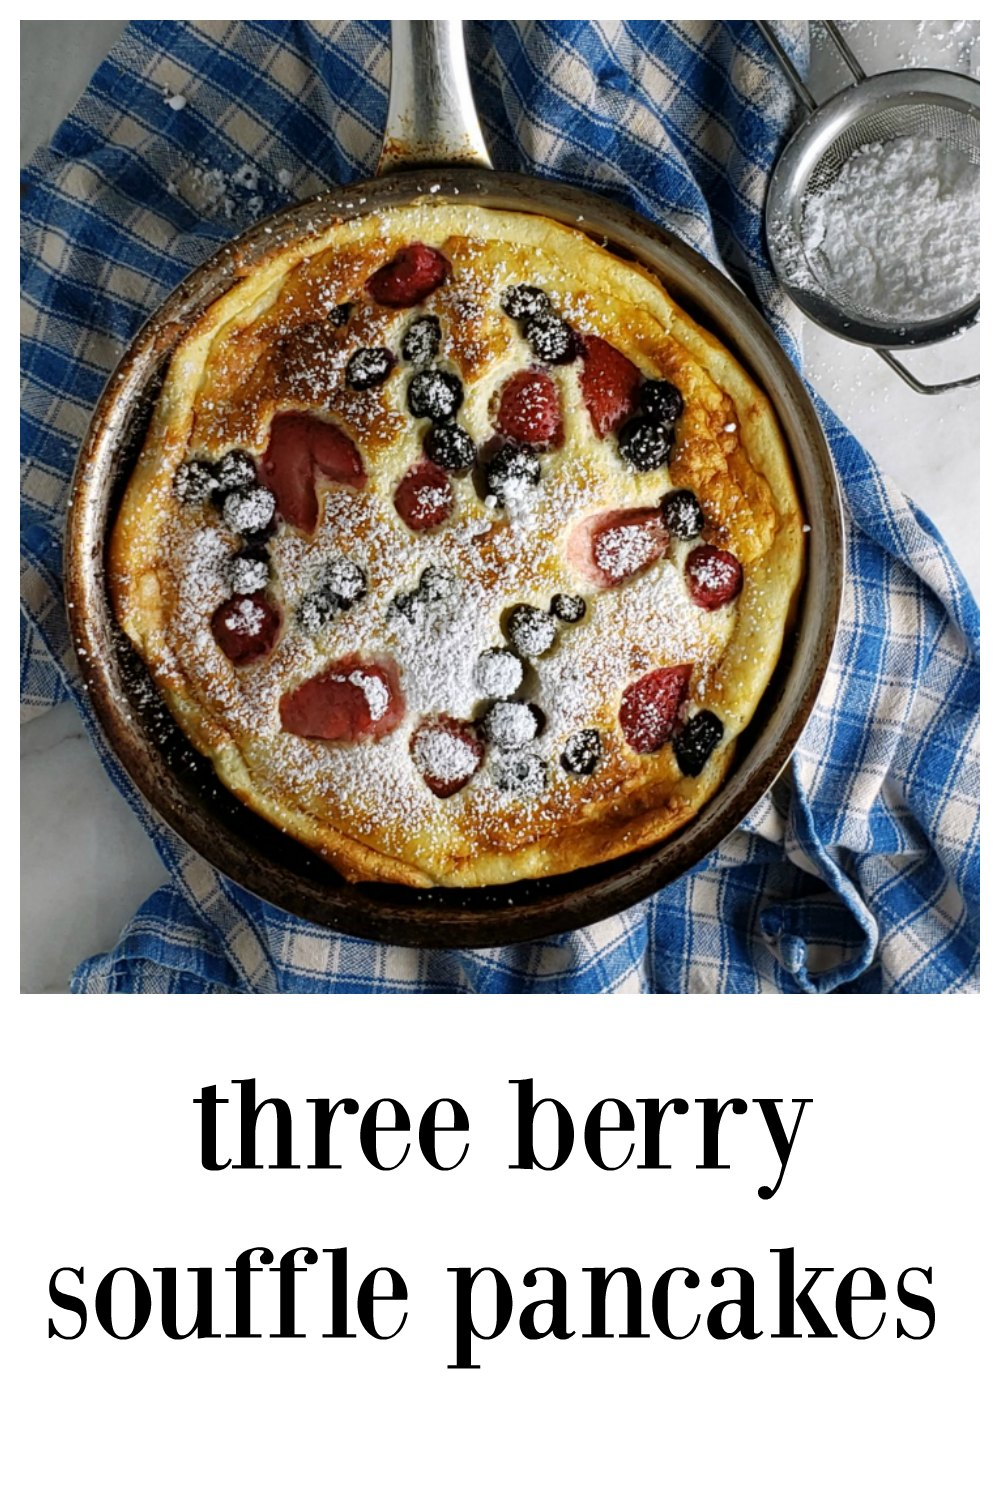 Berry Souffle Pancakes are light and airy perfection. The pancake is gorgeous and the berries transform to jammy deliciousness. #SoufflePancake #BerrySoufflePancakes